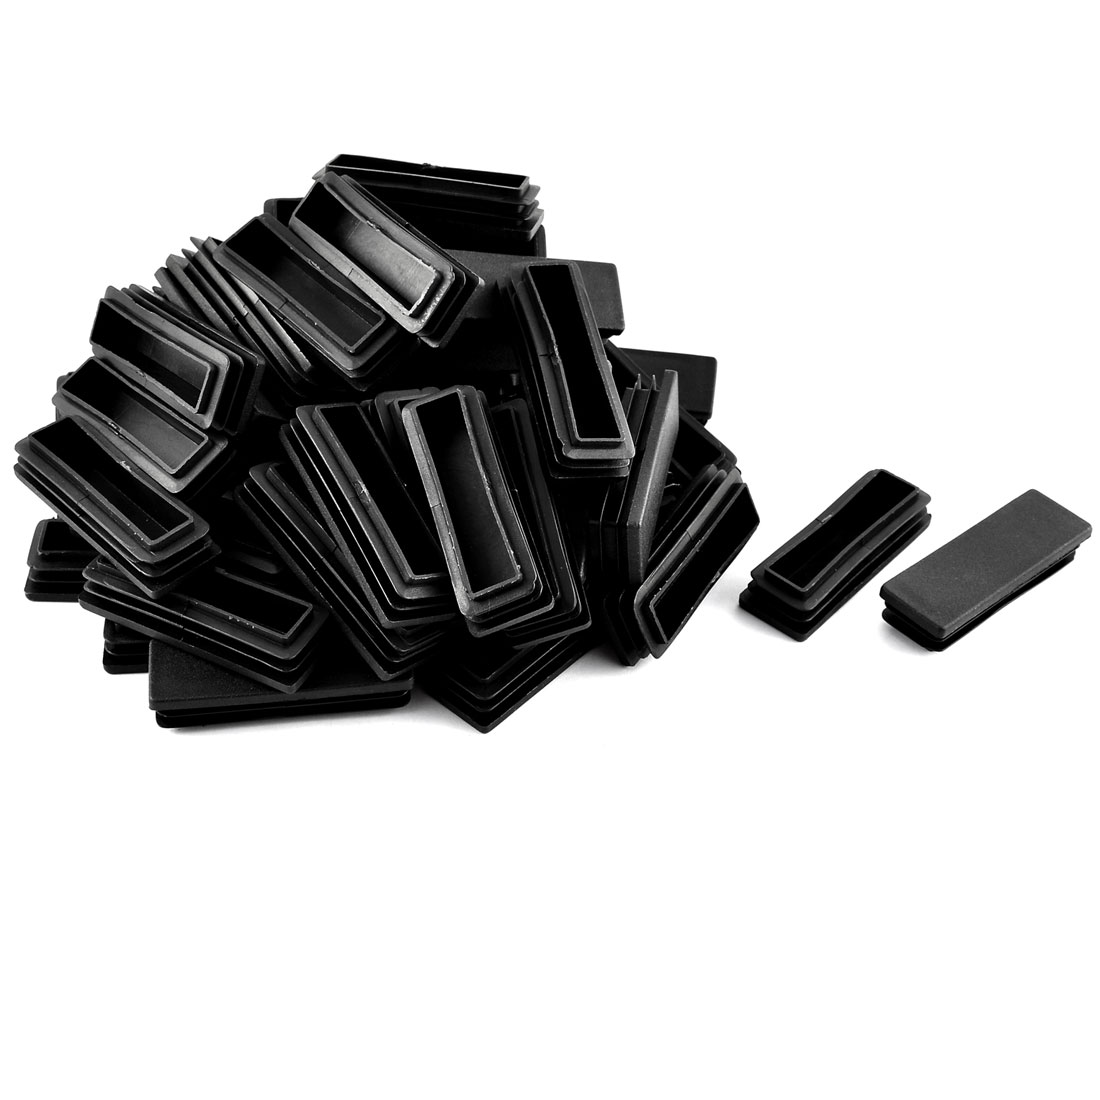 Home School Plastic Rectangular Shaped Table Chair Leg Feet Tube Insert Black 50 Pcs